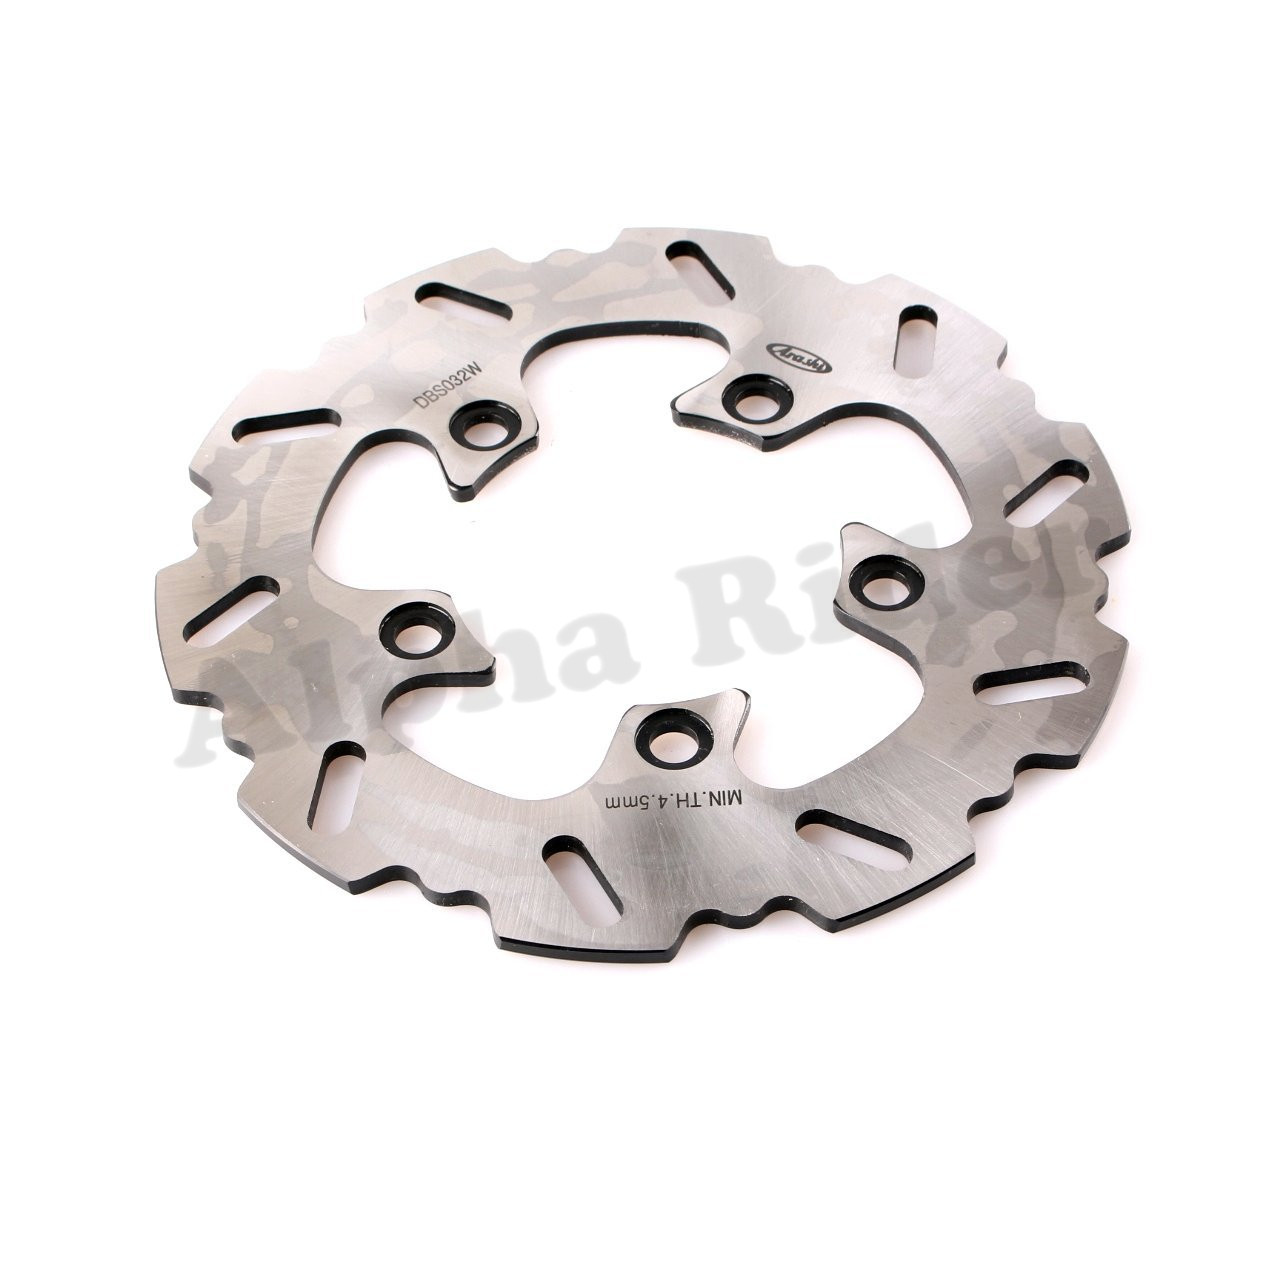 1 Pcs Motorcycle Steel Rear Brake Rotor Disc Braking Disk for Suzuki SV 650/S 2003-2009 SV 1000/S 2003-2007 TL 1000R/S 1998-2001 1 pcs motorcycle rear brake rotor disc steel braking disk for honda cbr1100xx 1997 2004 xlv1000 varadero abs 2004 2007 2010 2011